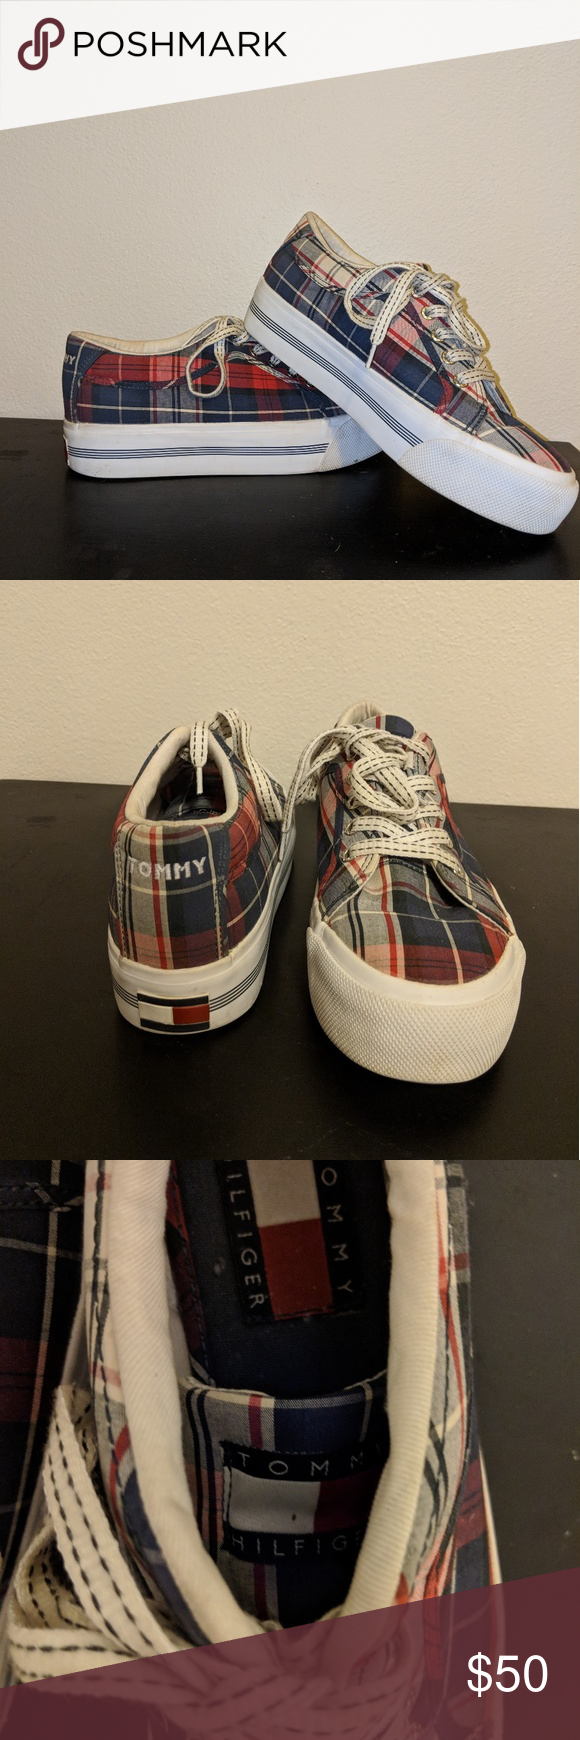 e5b95f80b78a11 Vintage 90s TOMMY Platform plaid tennis shoes Tommy platform tennis shoes.  Super cute. Size